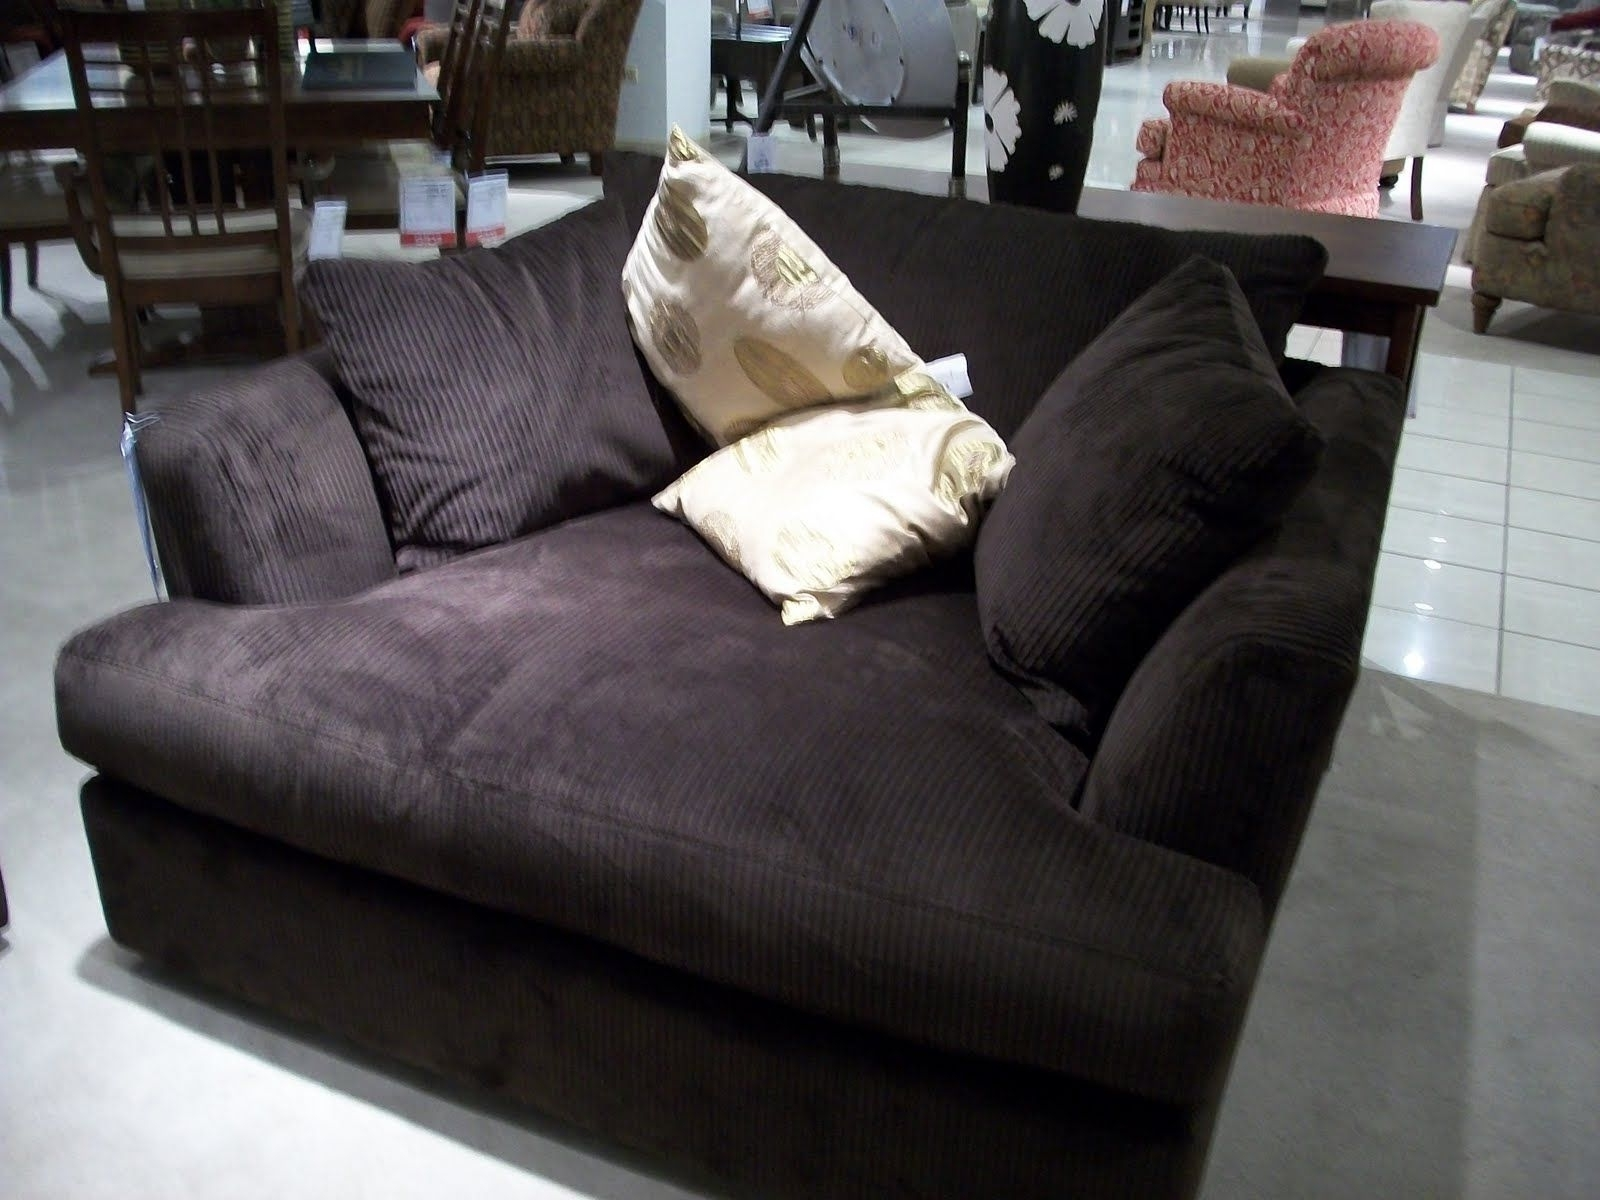 Most Recently Released Large Sofa Chairs Inside Big Comfy Oversized Armchair Where You Can Snuggle Up With A Good (View 1 of 15)